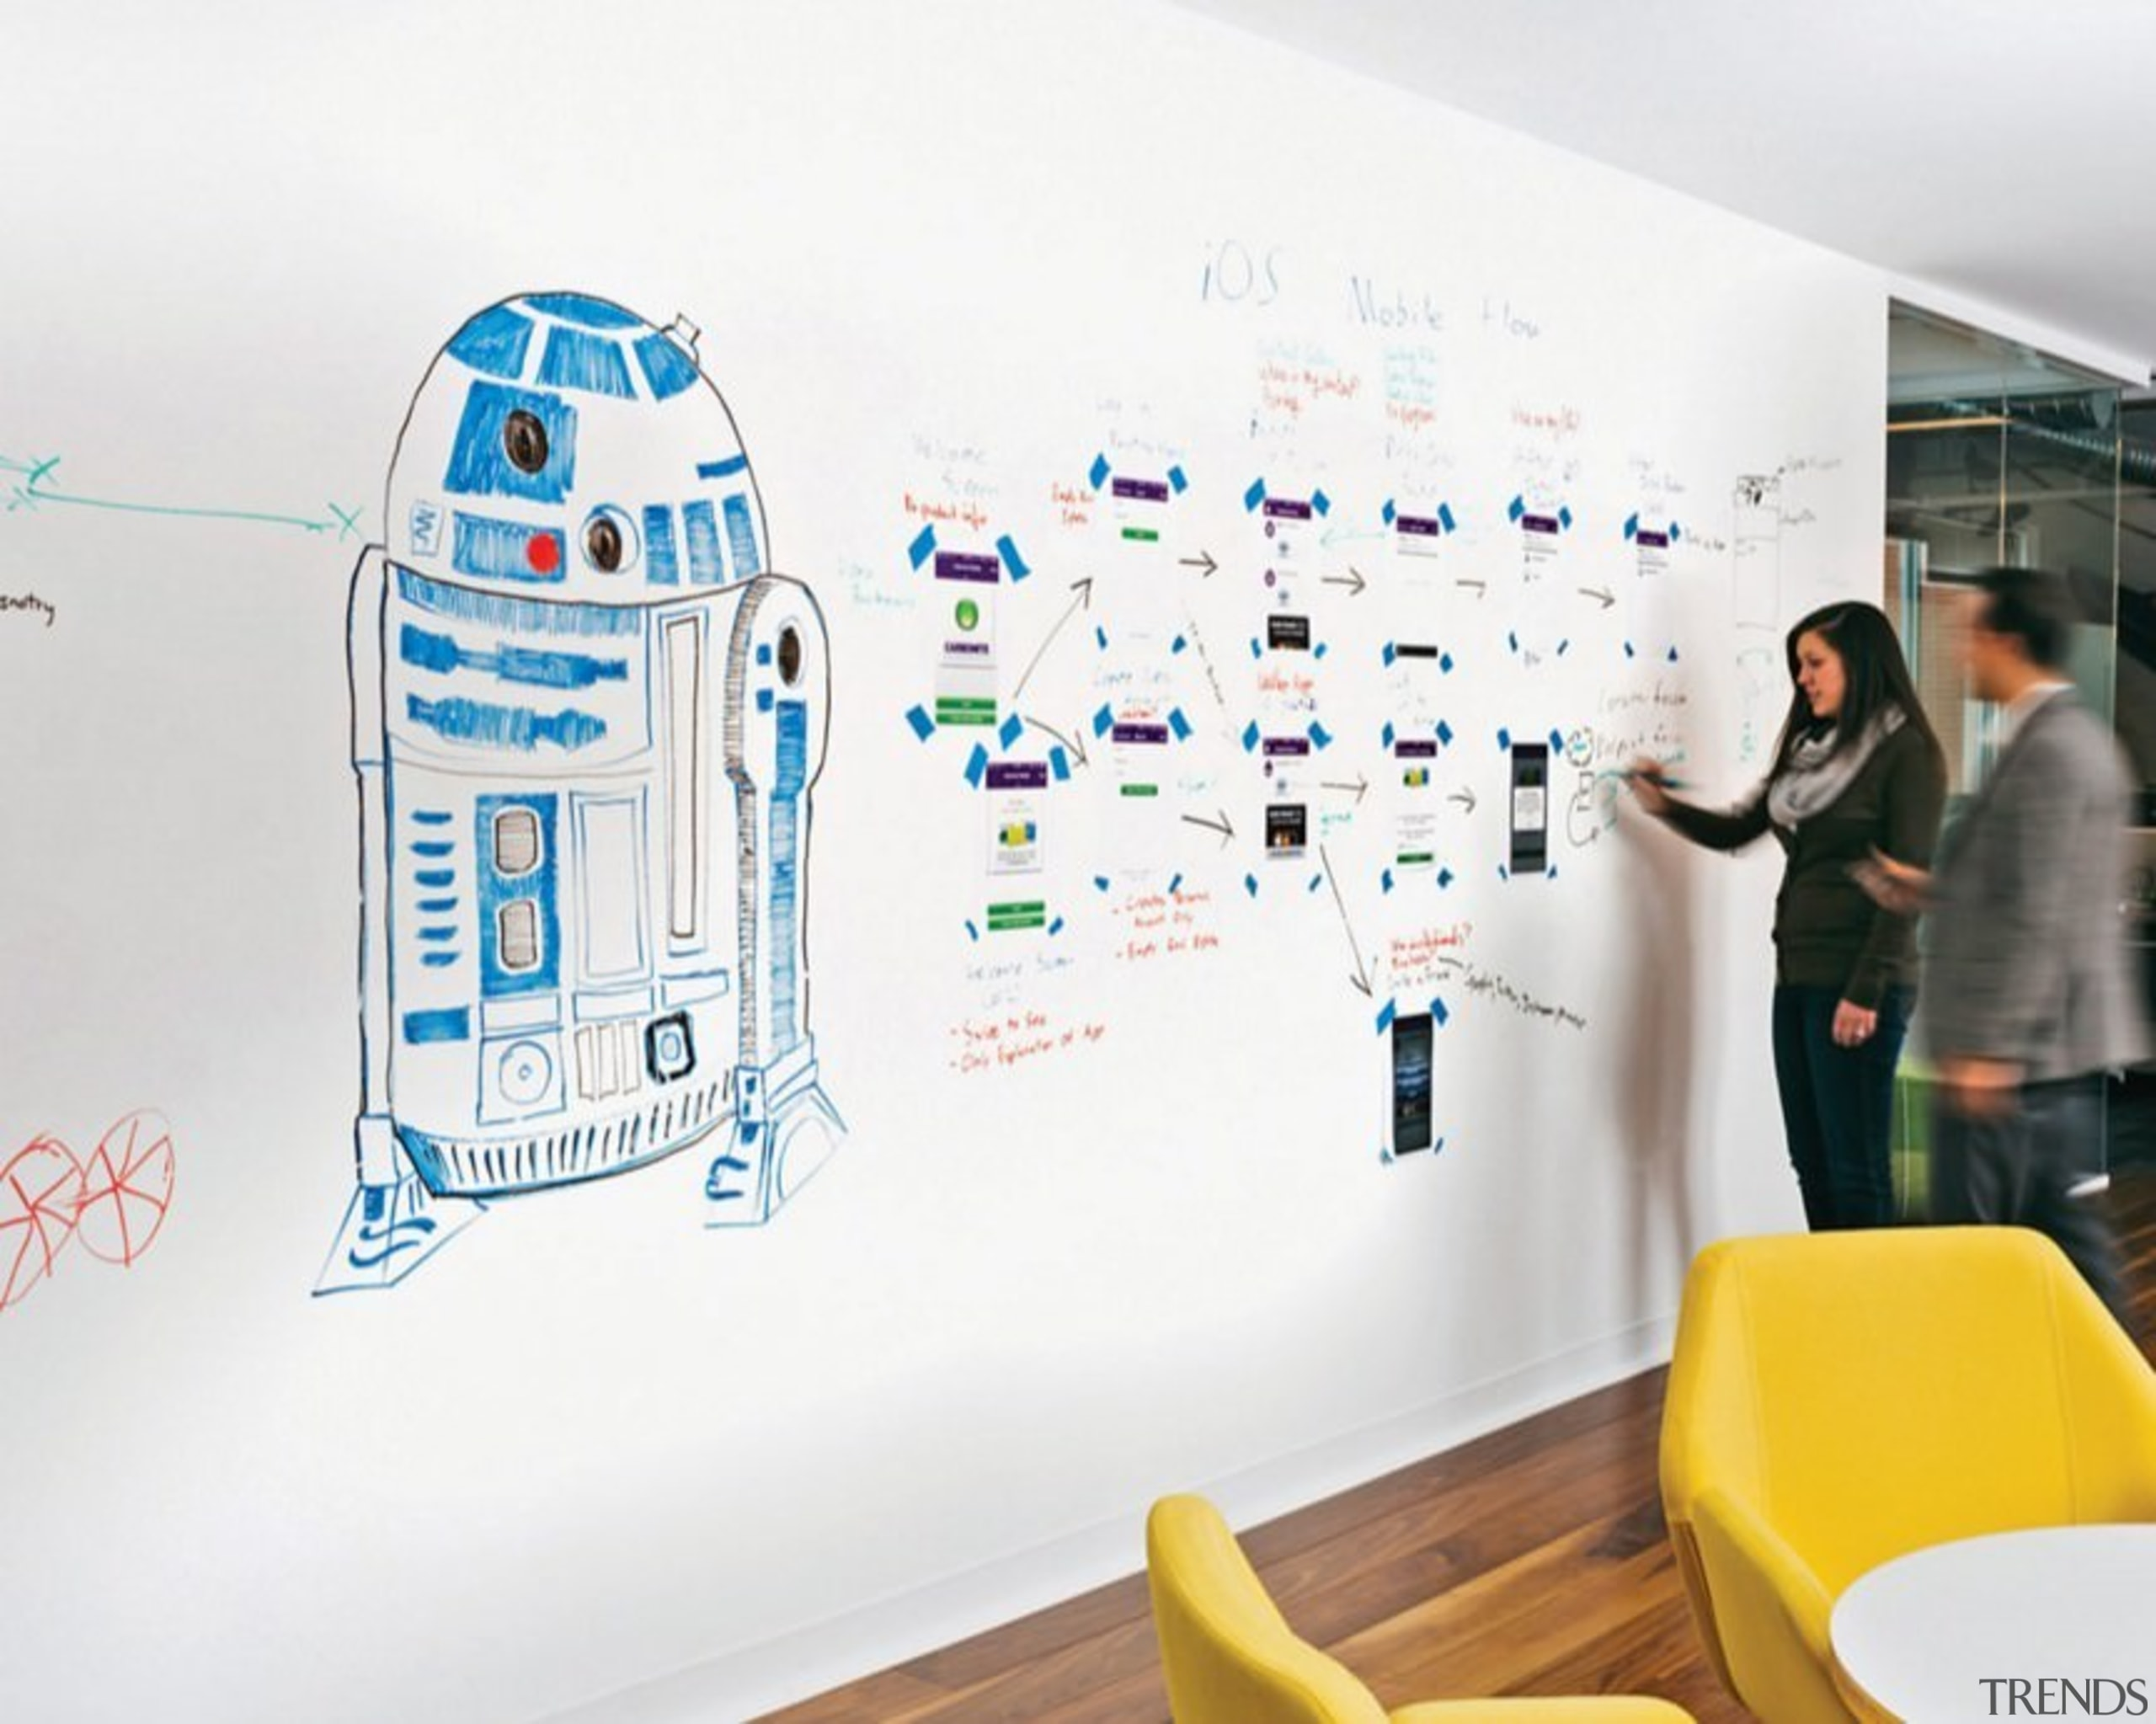 Turn your walls into idea platforms - Turn design, product, product design, white